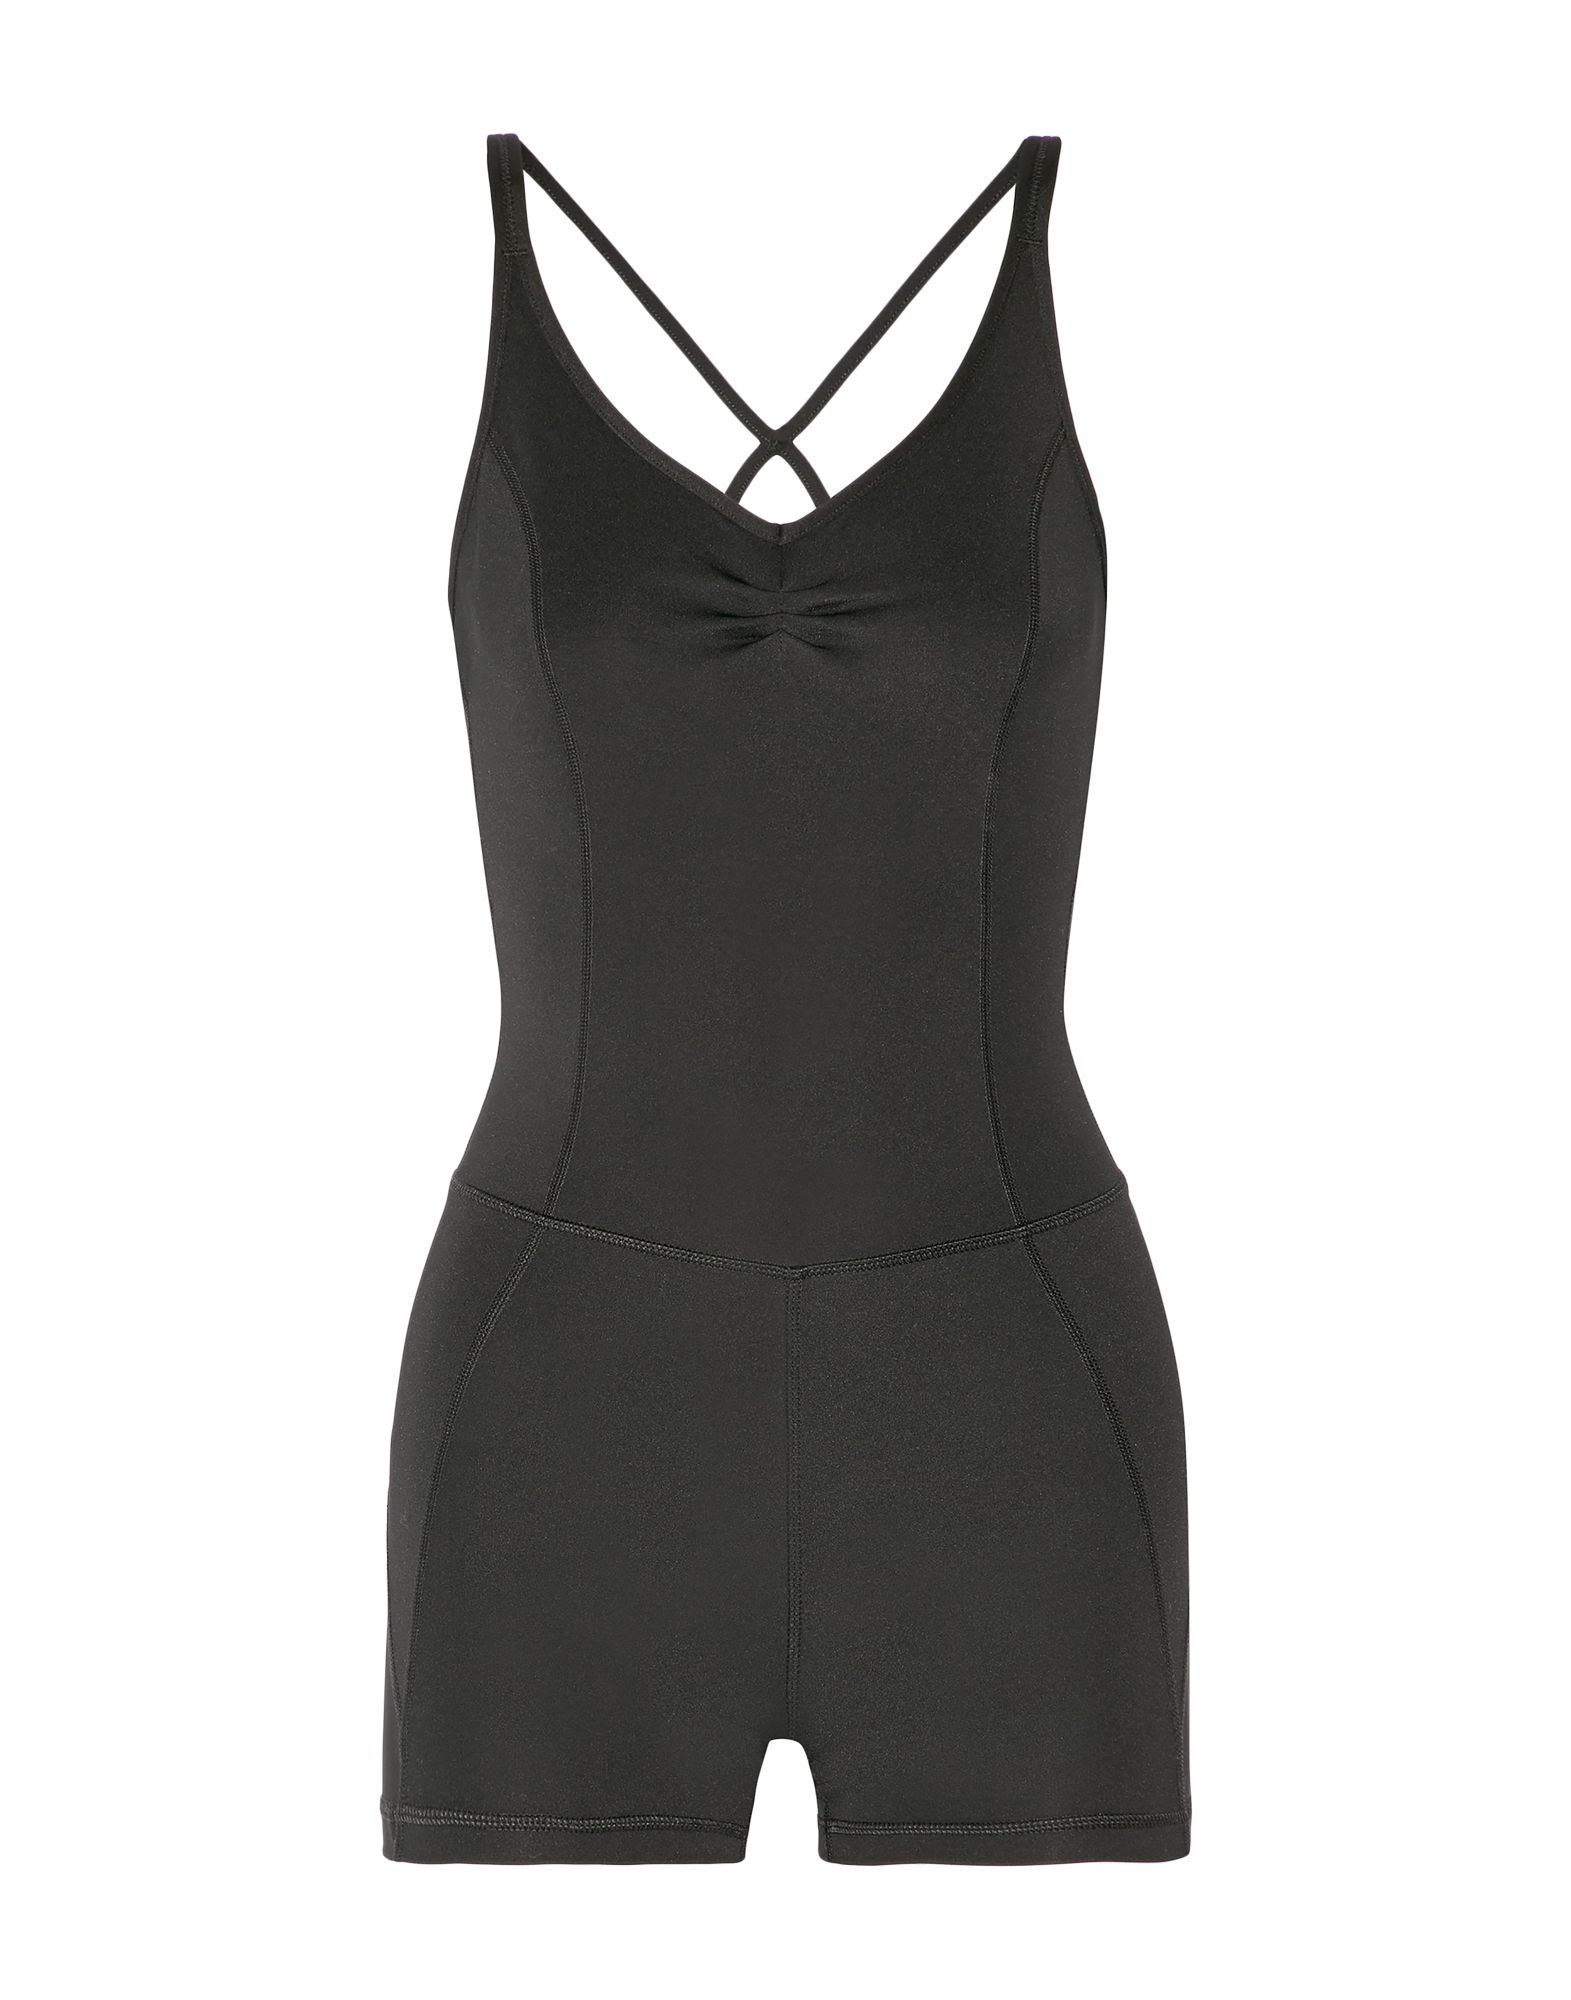 Фото - PURITY ACTIVE Комбинезоны без бретелей active cut out elastic vest in navy